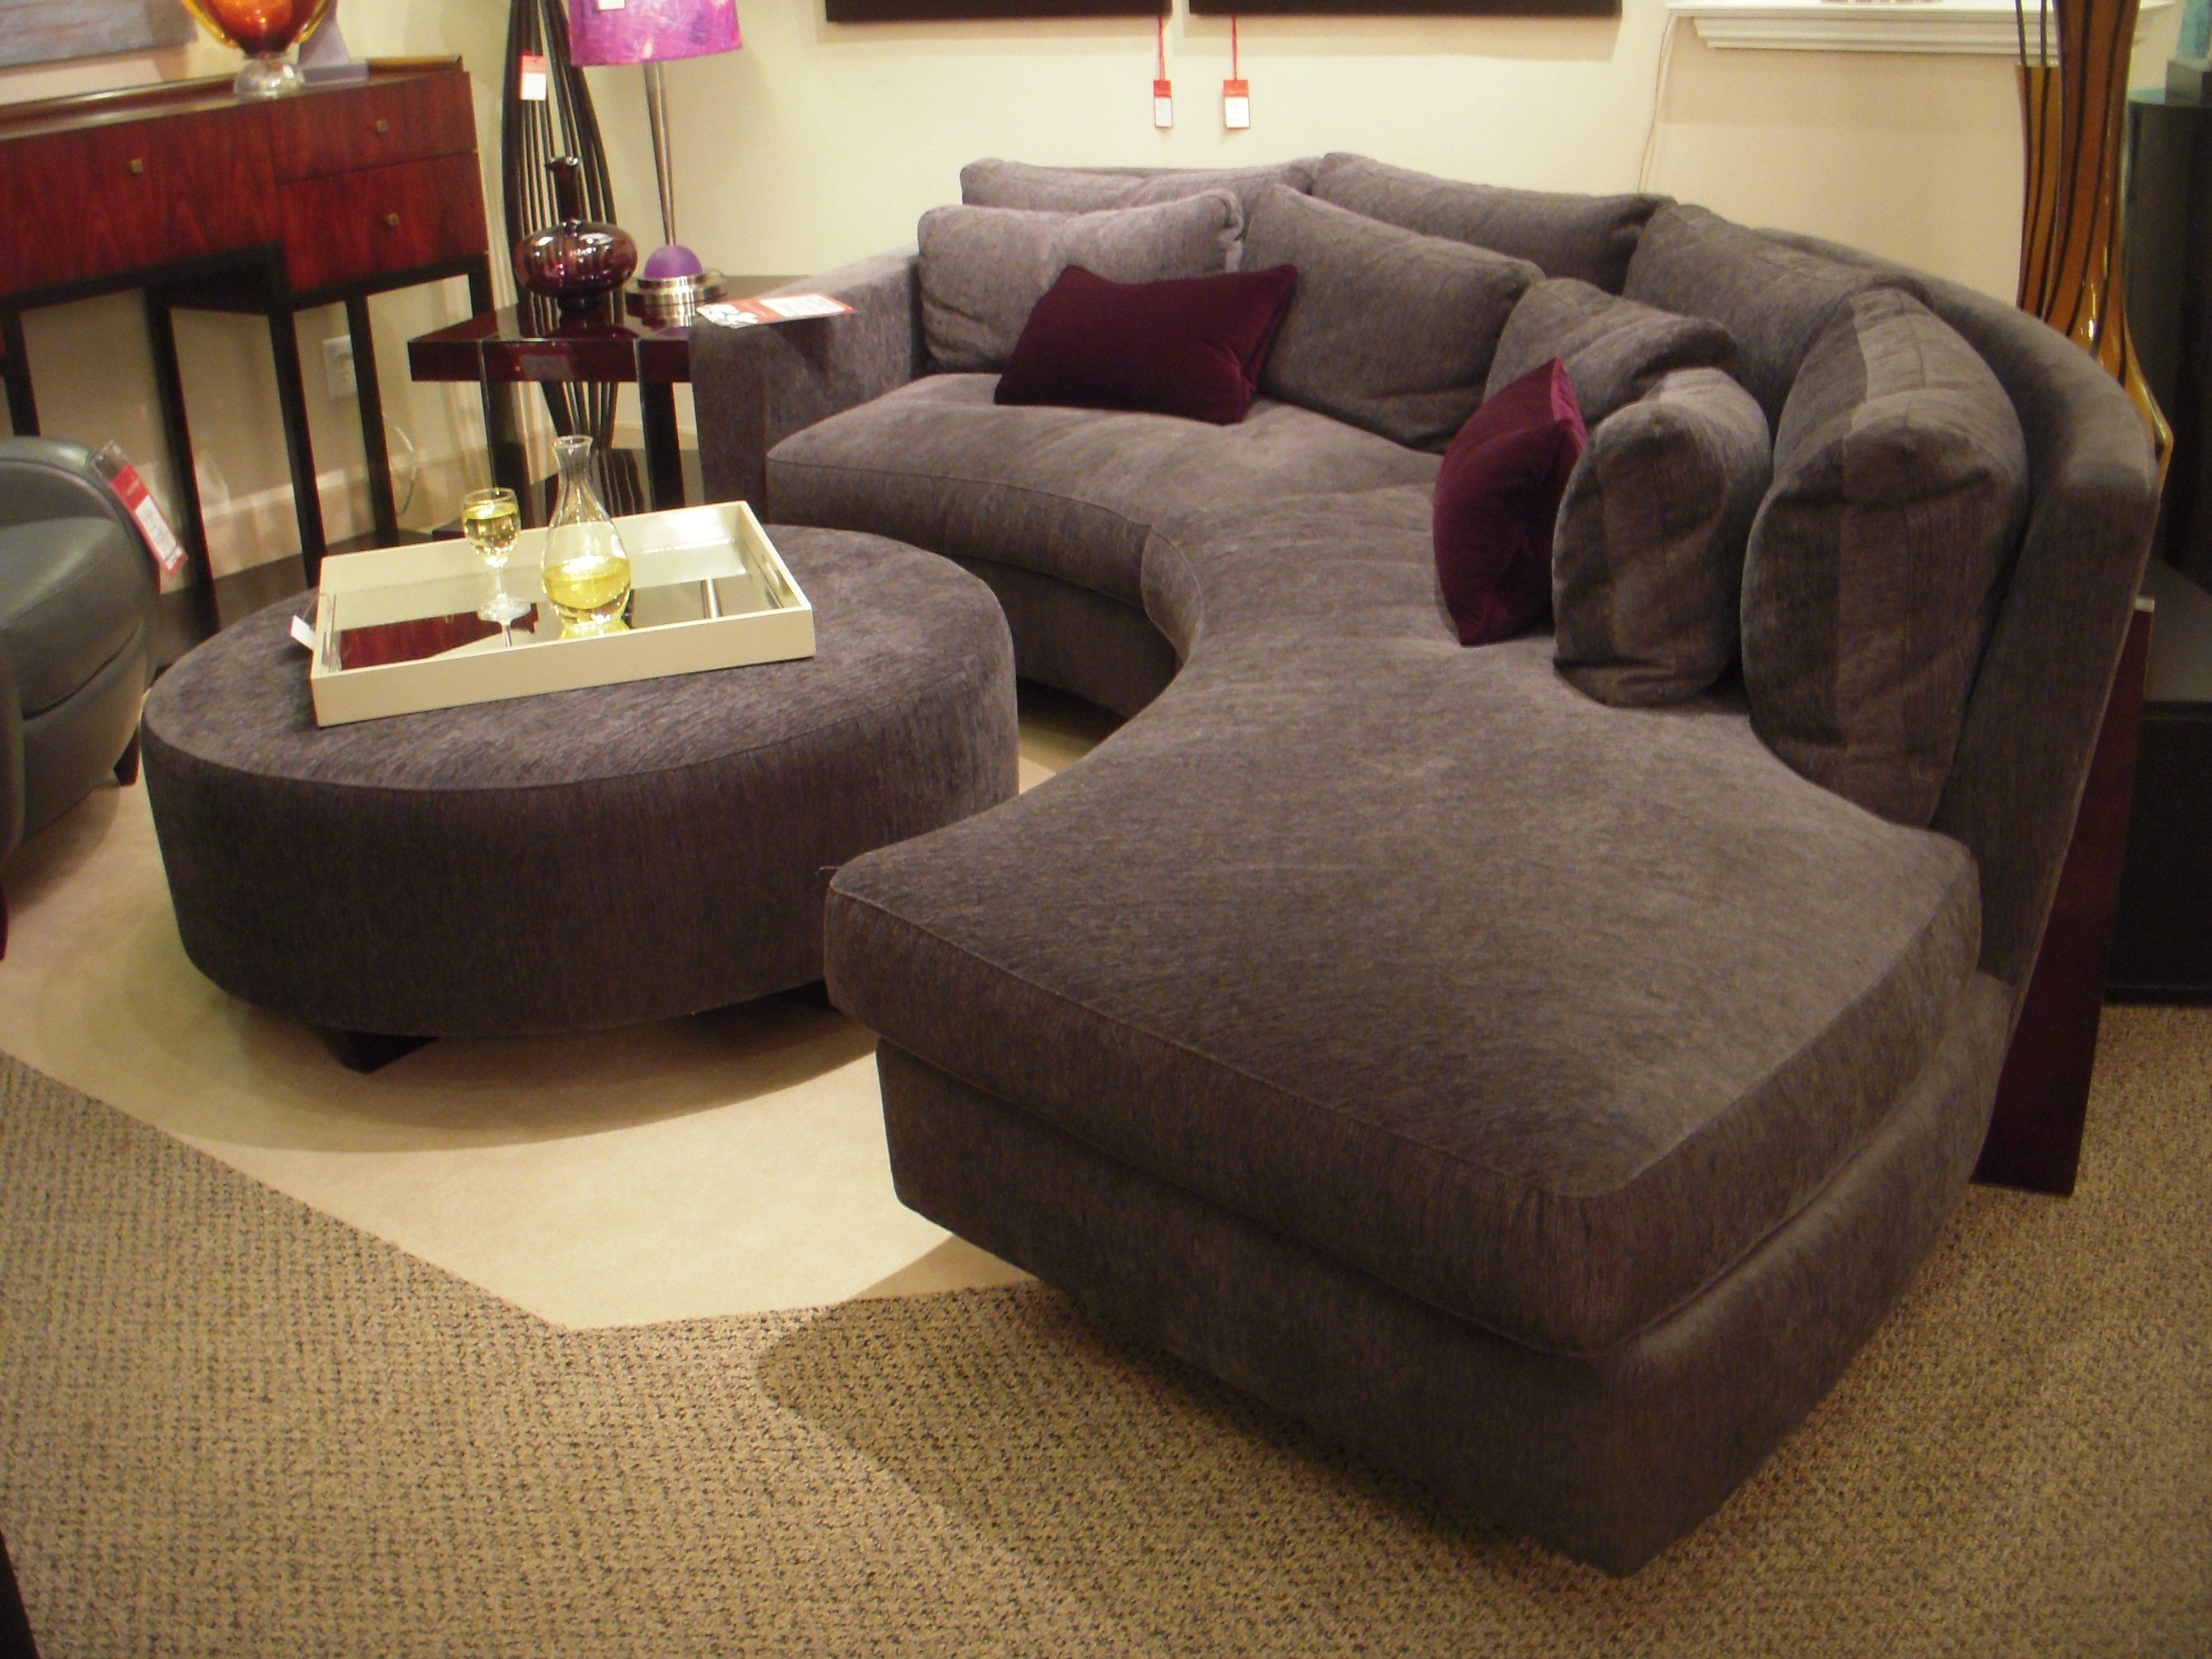 Round Sectional Sofa Bed - Hotelsbacau with regard to Circular Sectional Sofas (Image 6 of 10)